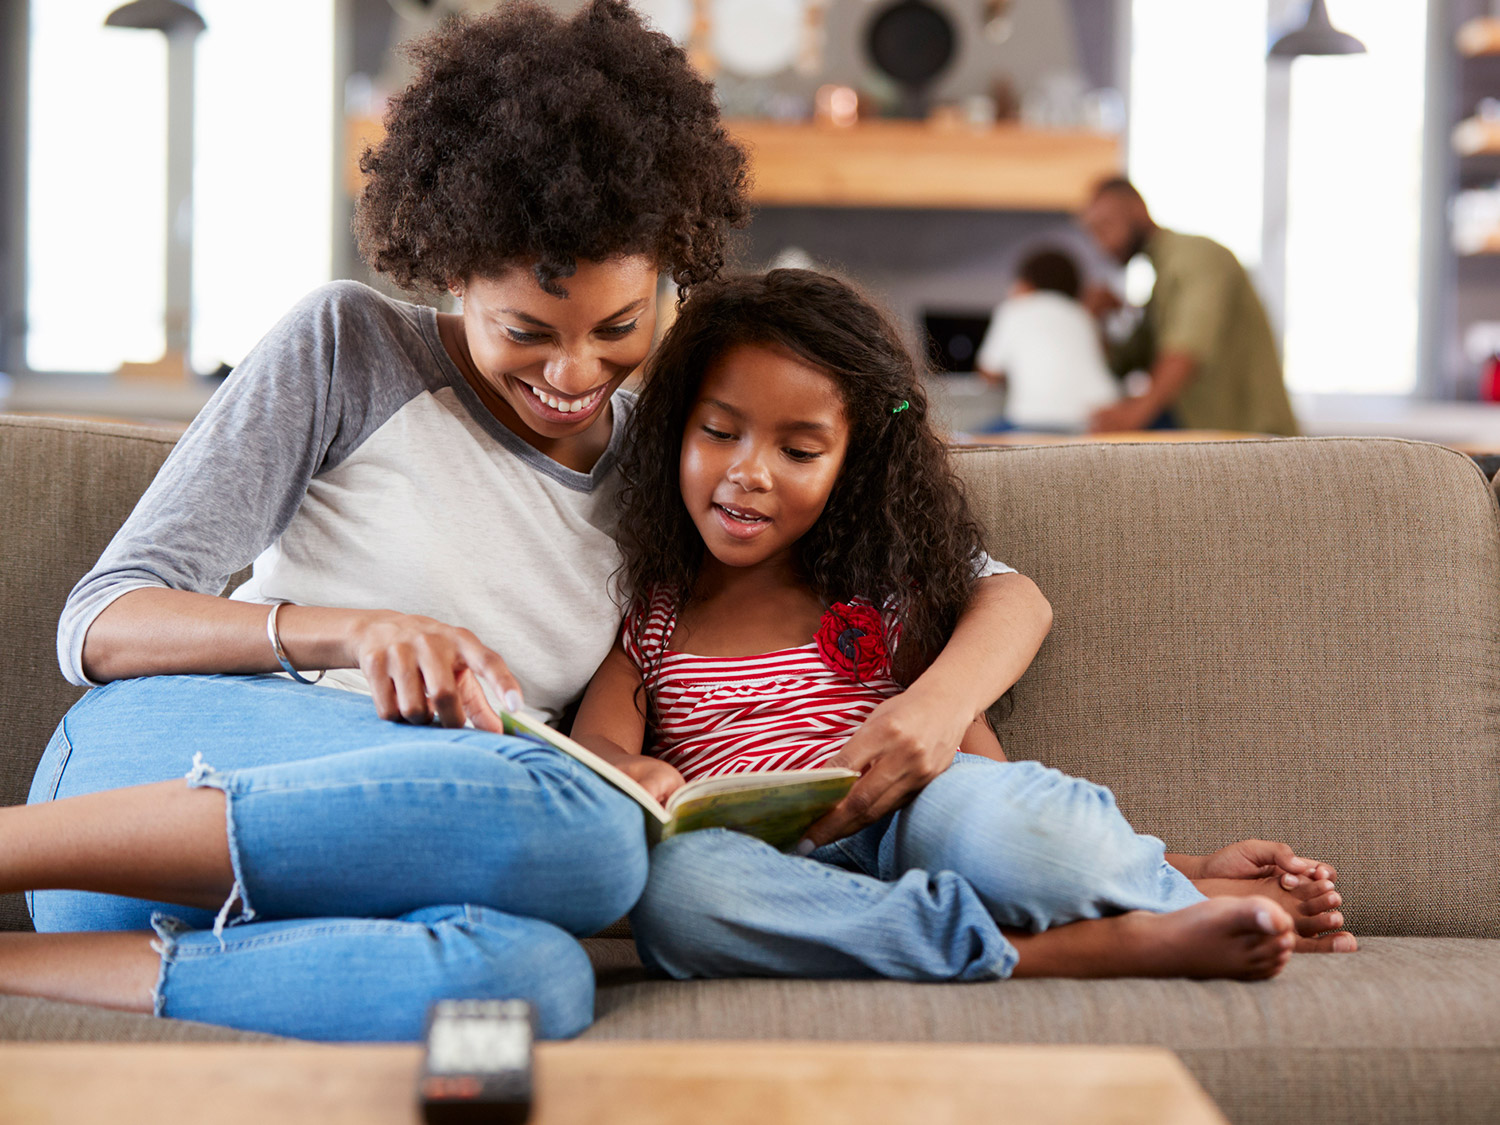 Get Your Child to Have Fun Reading   Scholastic   Parents